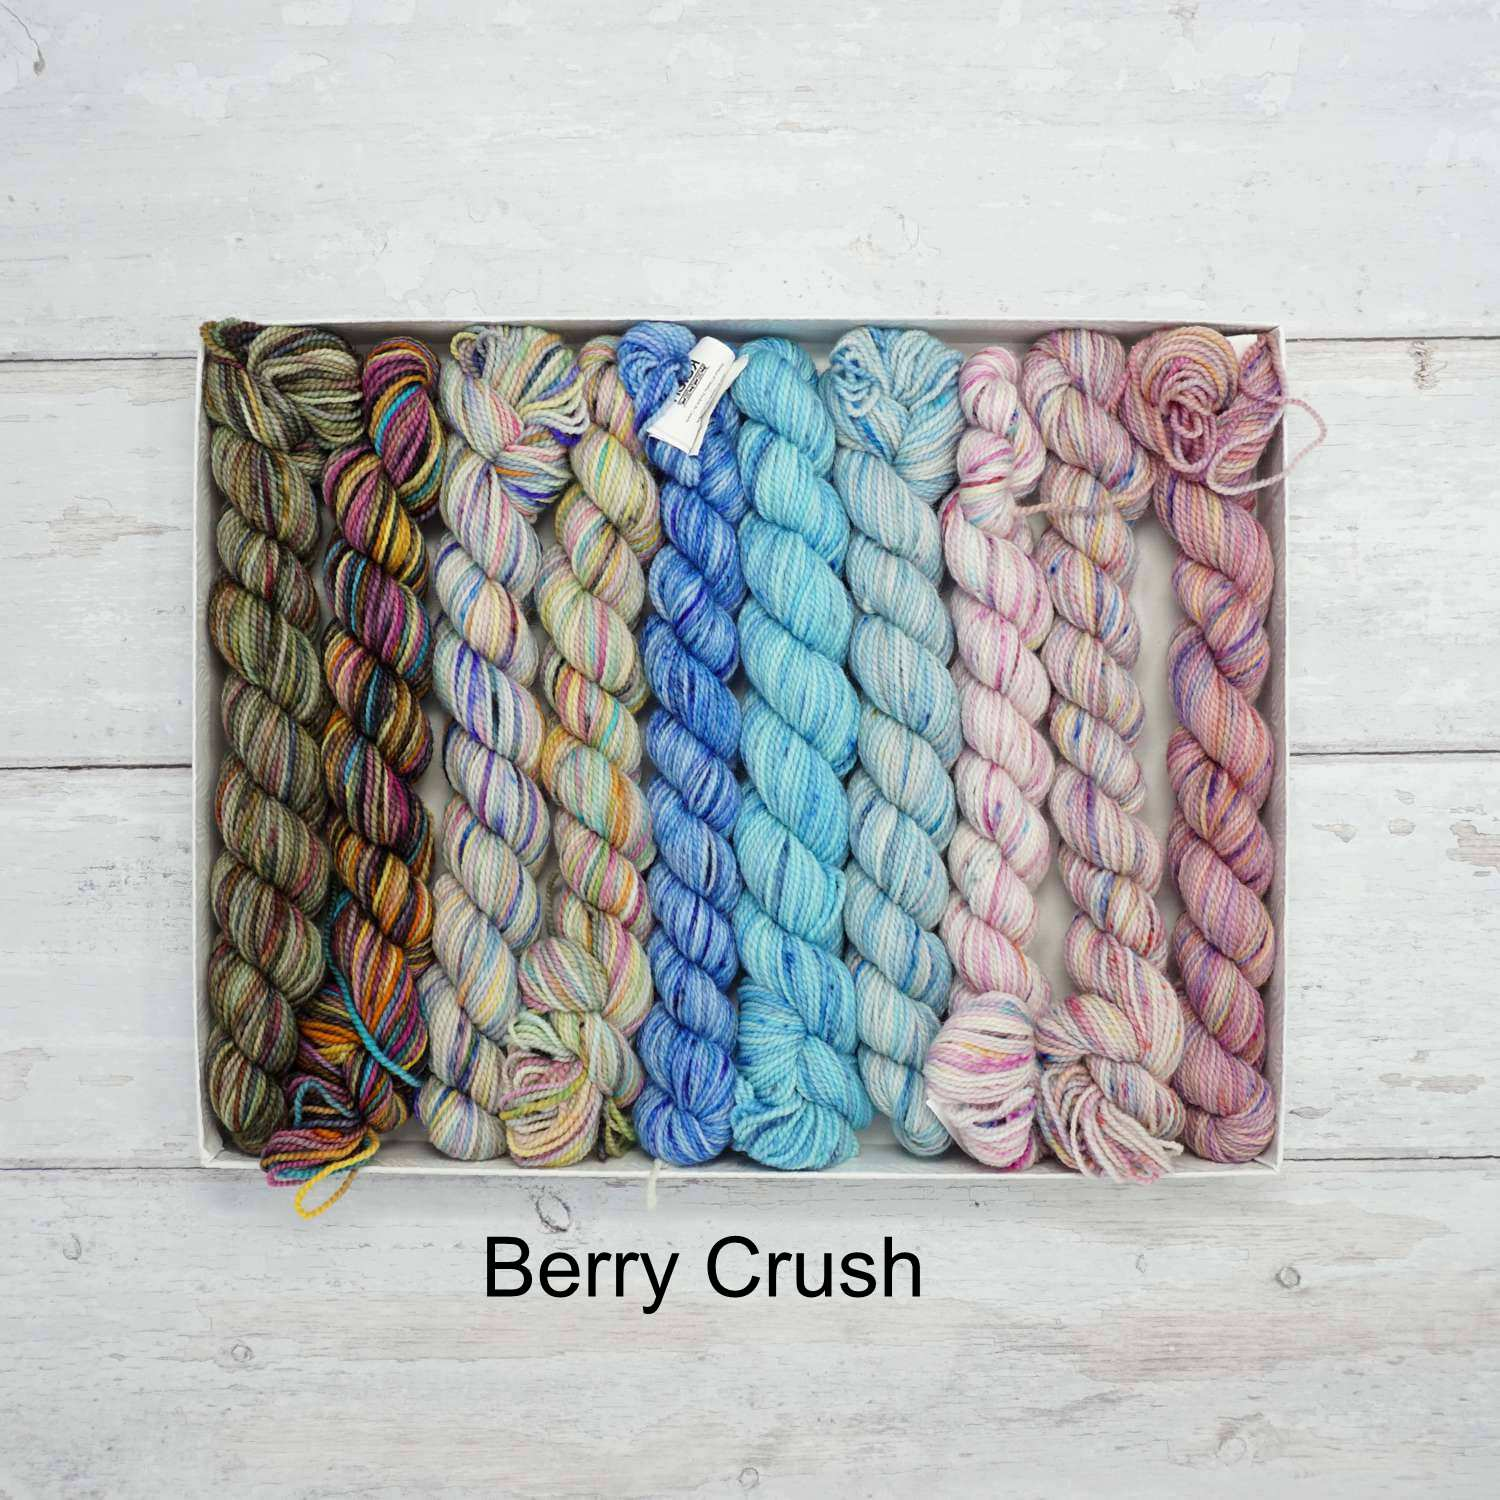 Koigu Wool - KPPPM Pencil Box Collection (10 x 25g Mini Skeins) in Berry Crush | Yarn Worx